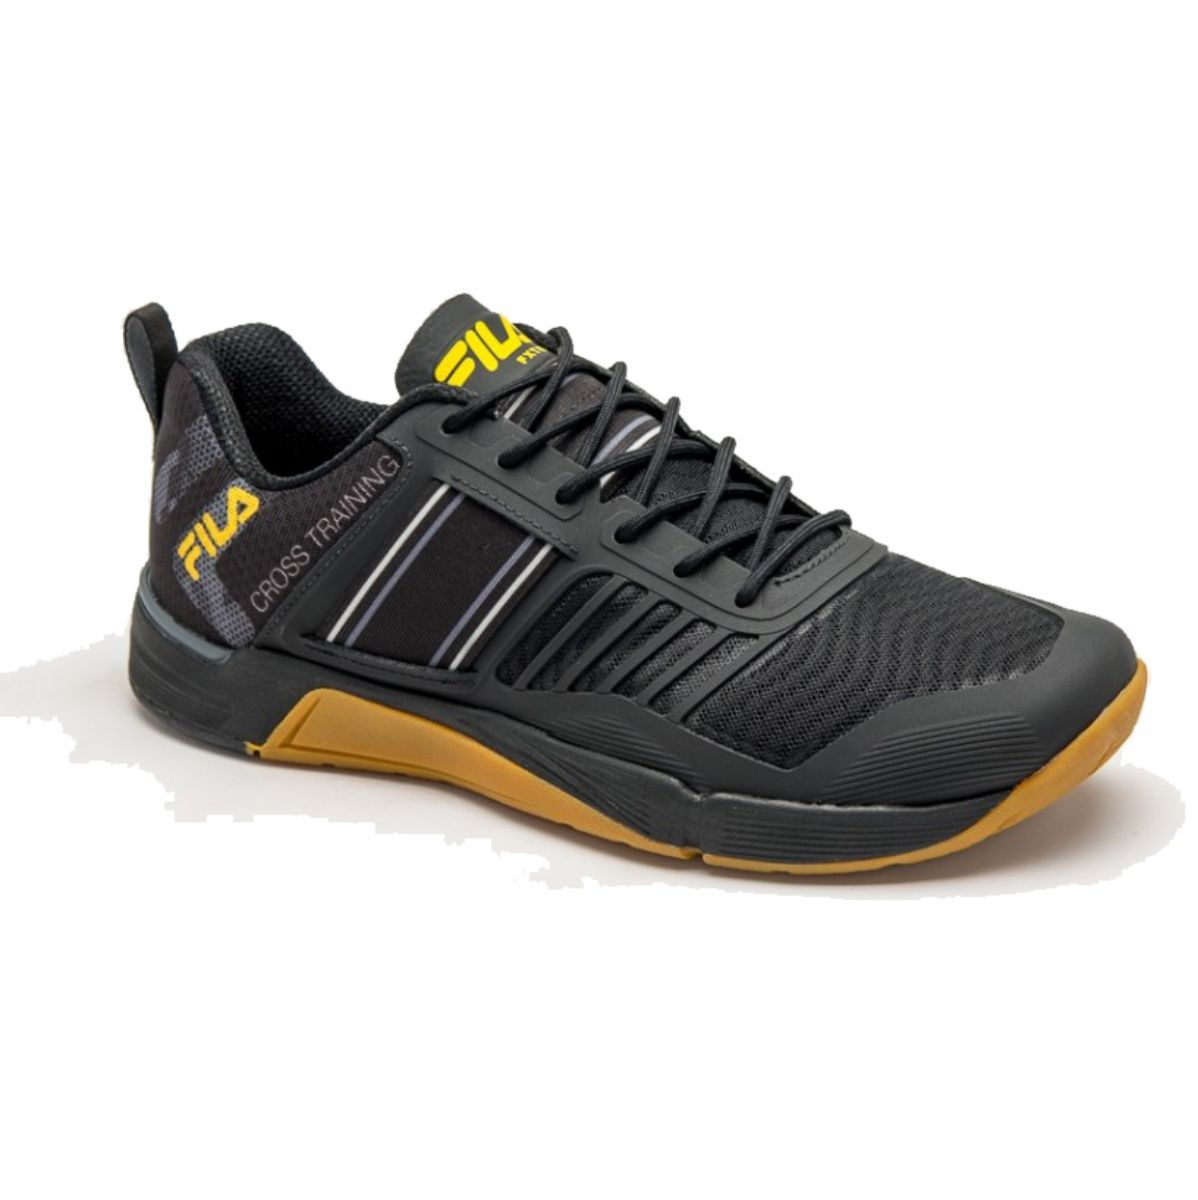 Tenis Fila Fxt Pro 2.0 Cross Fit Training Preto